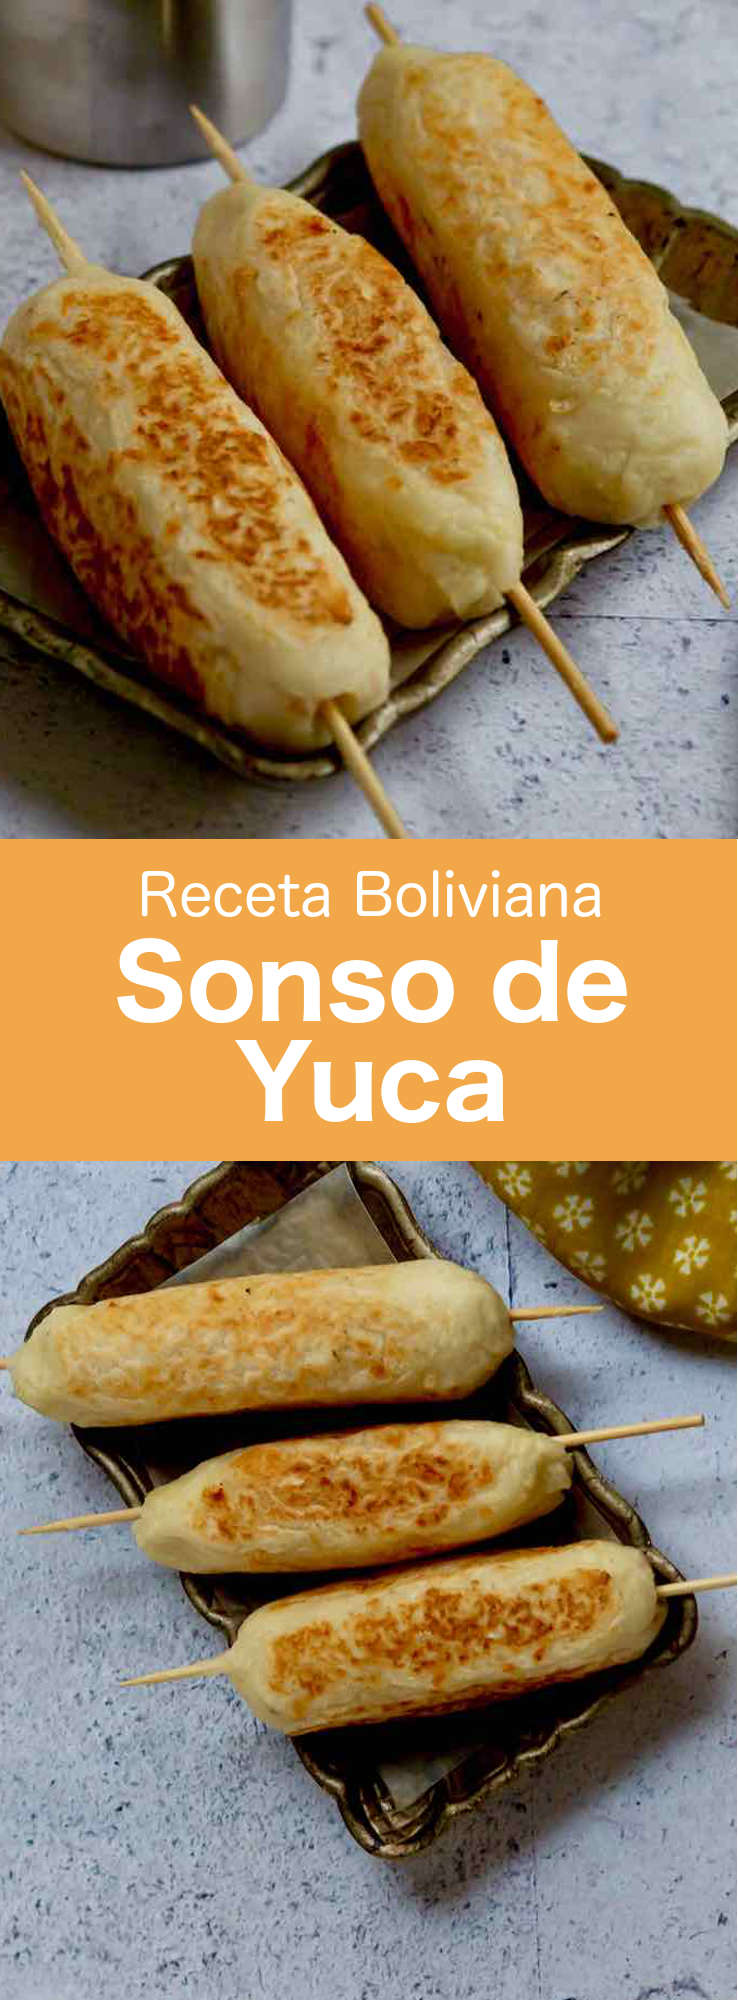 Sonso de yuca is a popular Bolivian dish made from cassava mash and grated cheese set around a skewer, which can be grilled, baked, or fried.